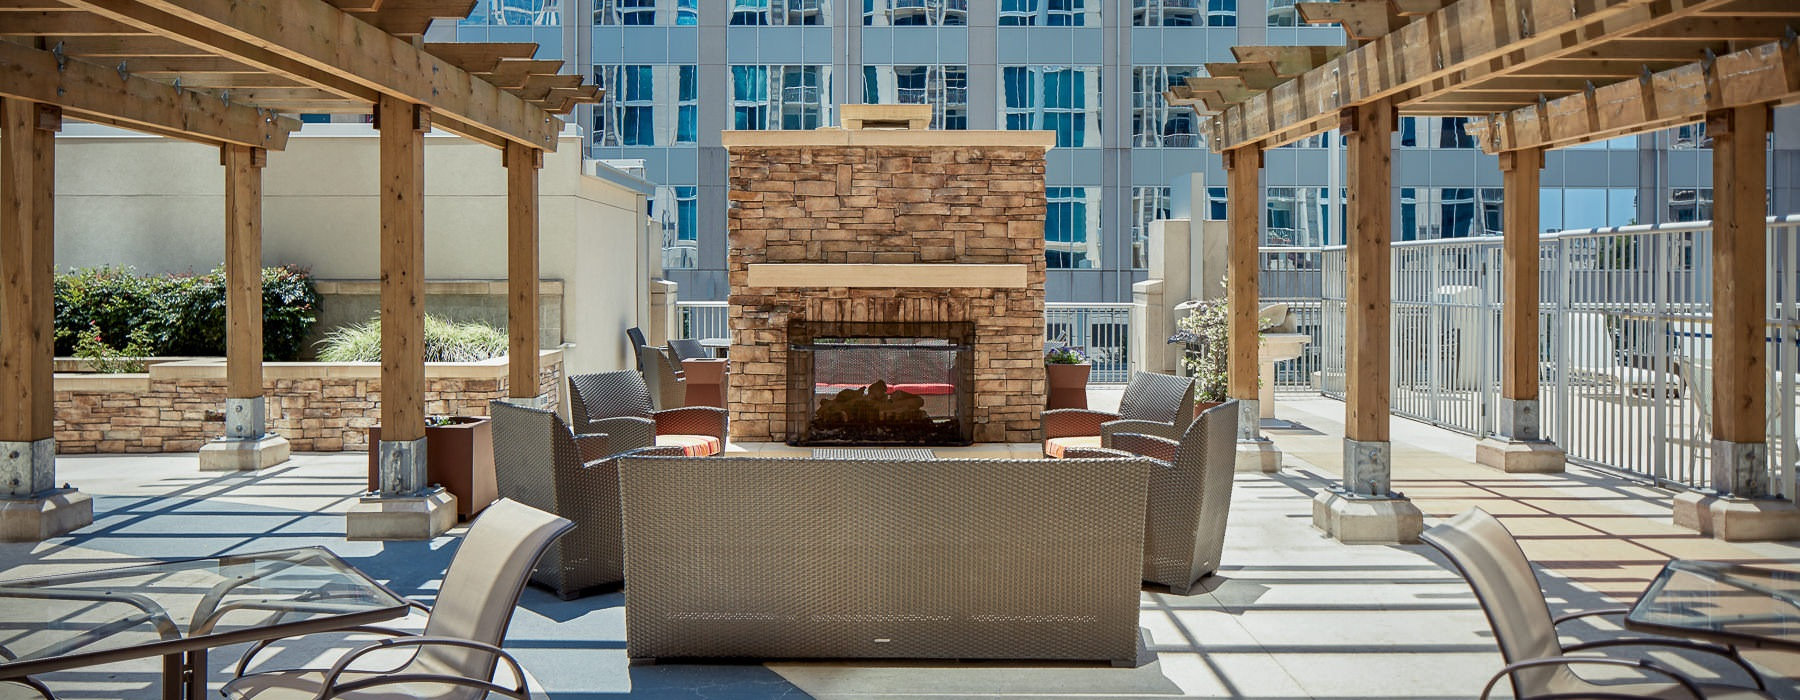 outdoor fire place with seating under pergola